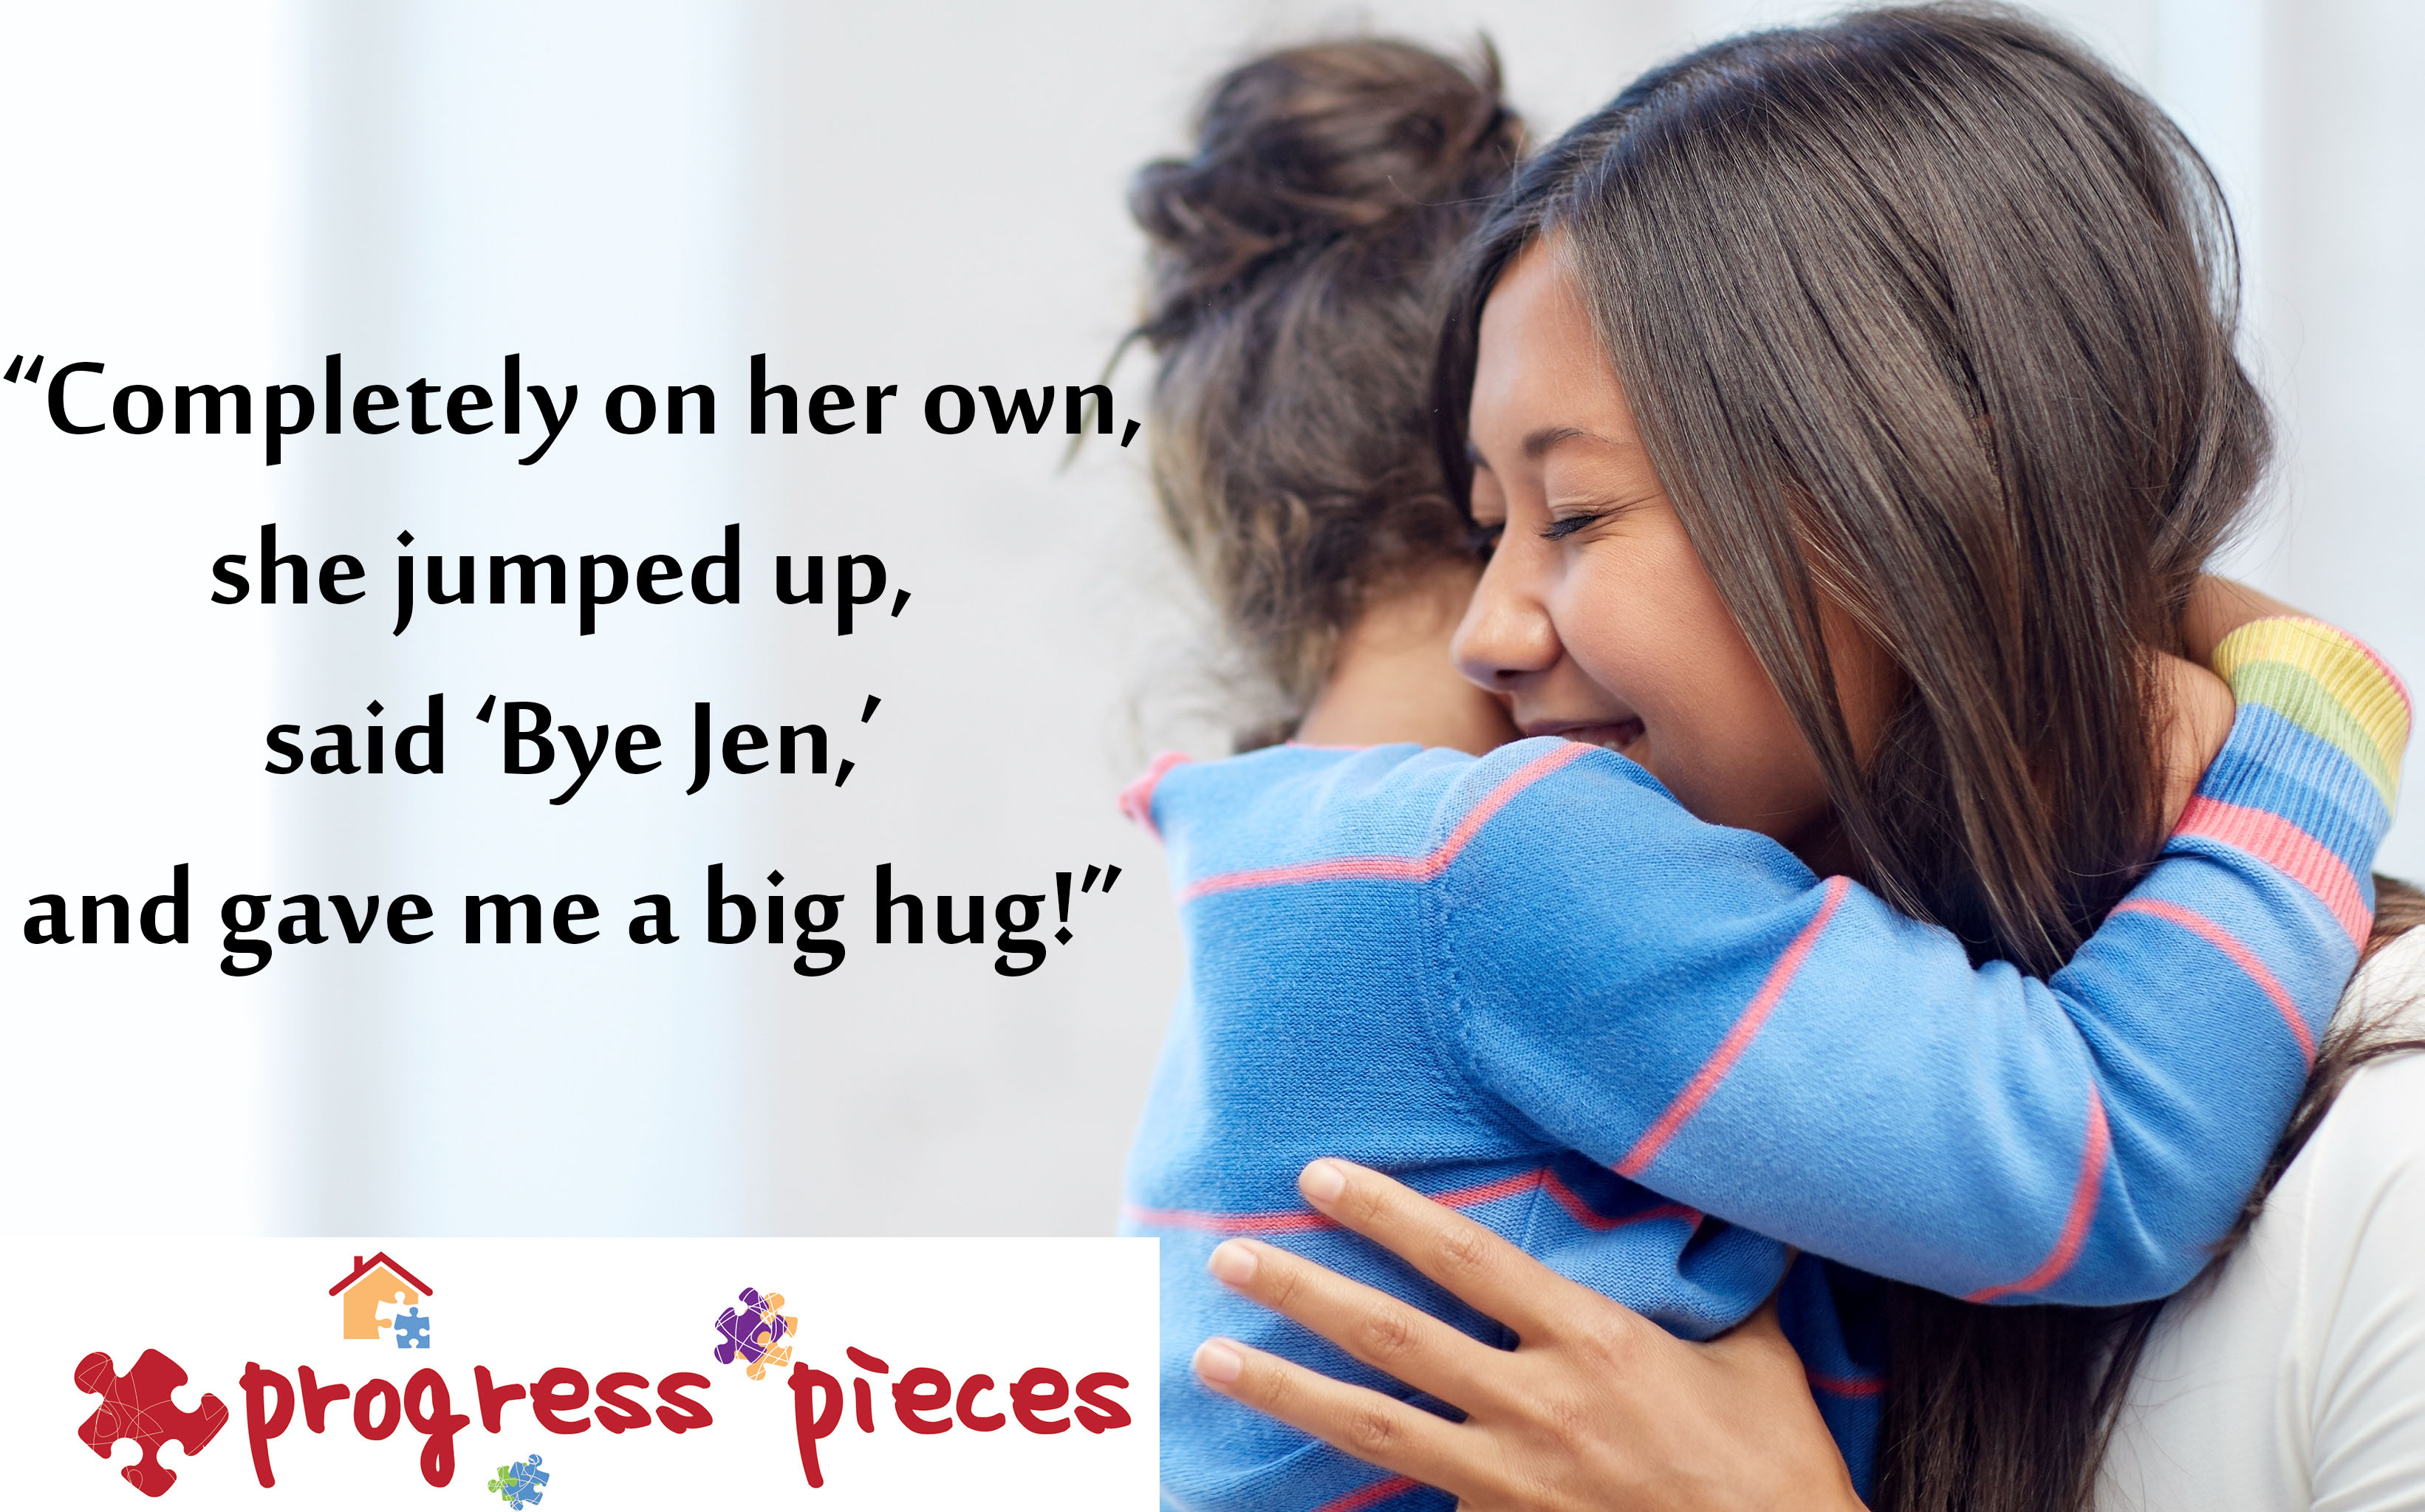 6.1.17 hug picture with Jen Ryden quote.jpg